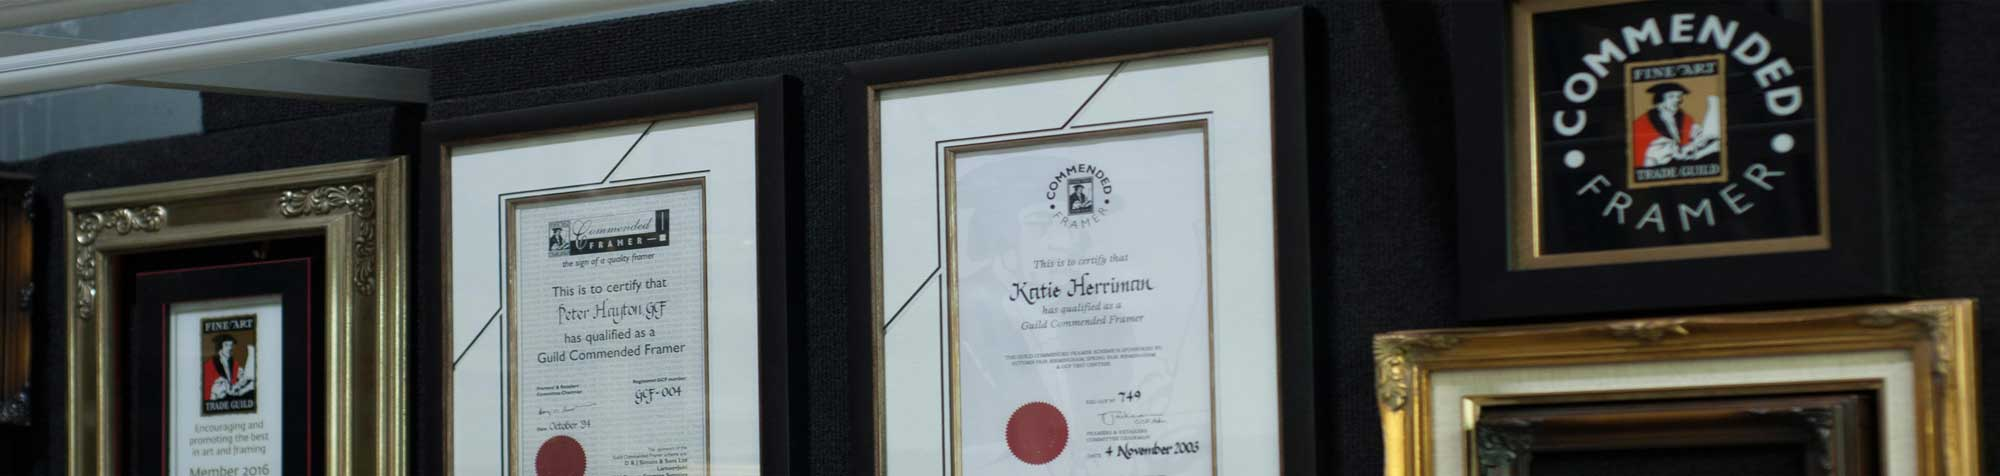 Framing certificates